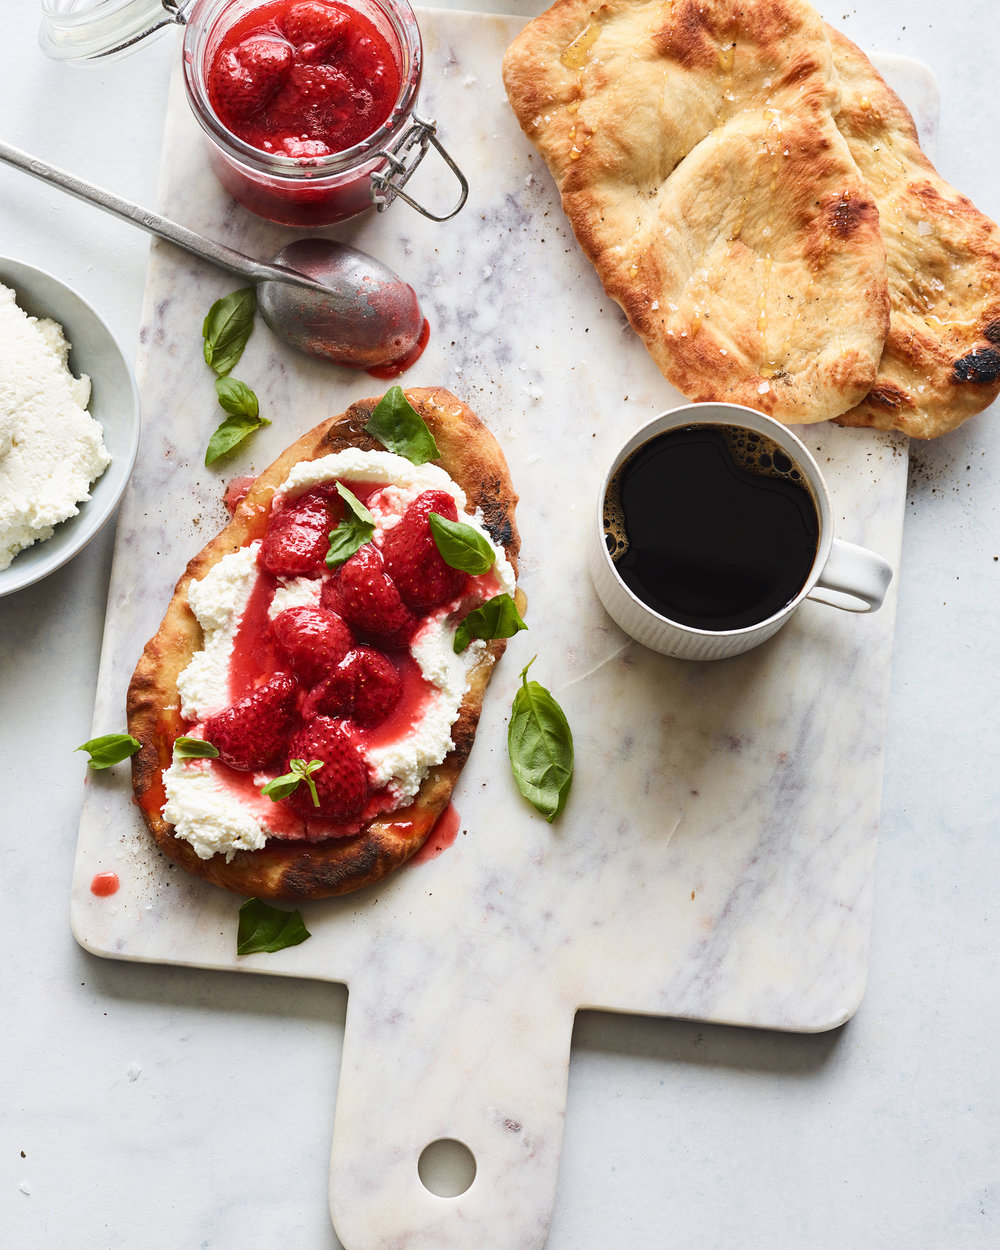 030517WGCCB__BREAKFAST_FLATBREAD_RICOTTA_STRAWBERRY_BASIL_JAM_01_f.jpg